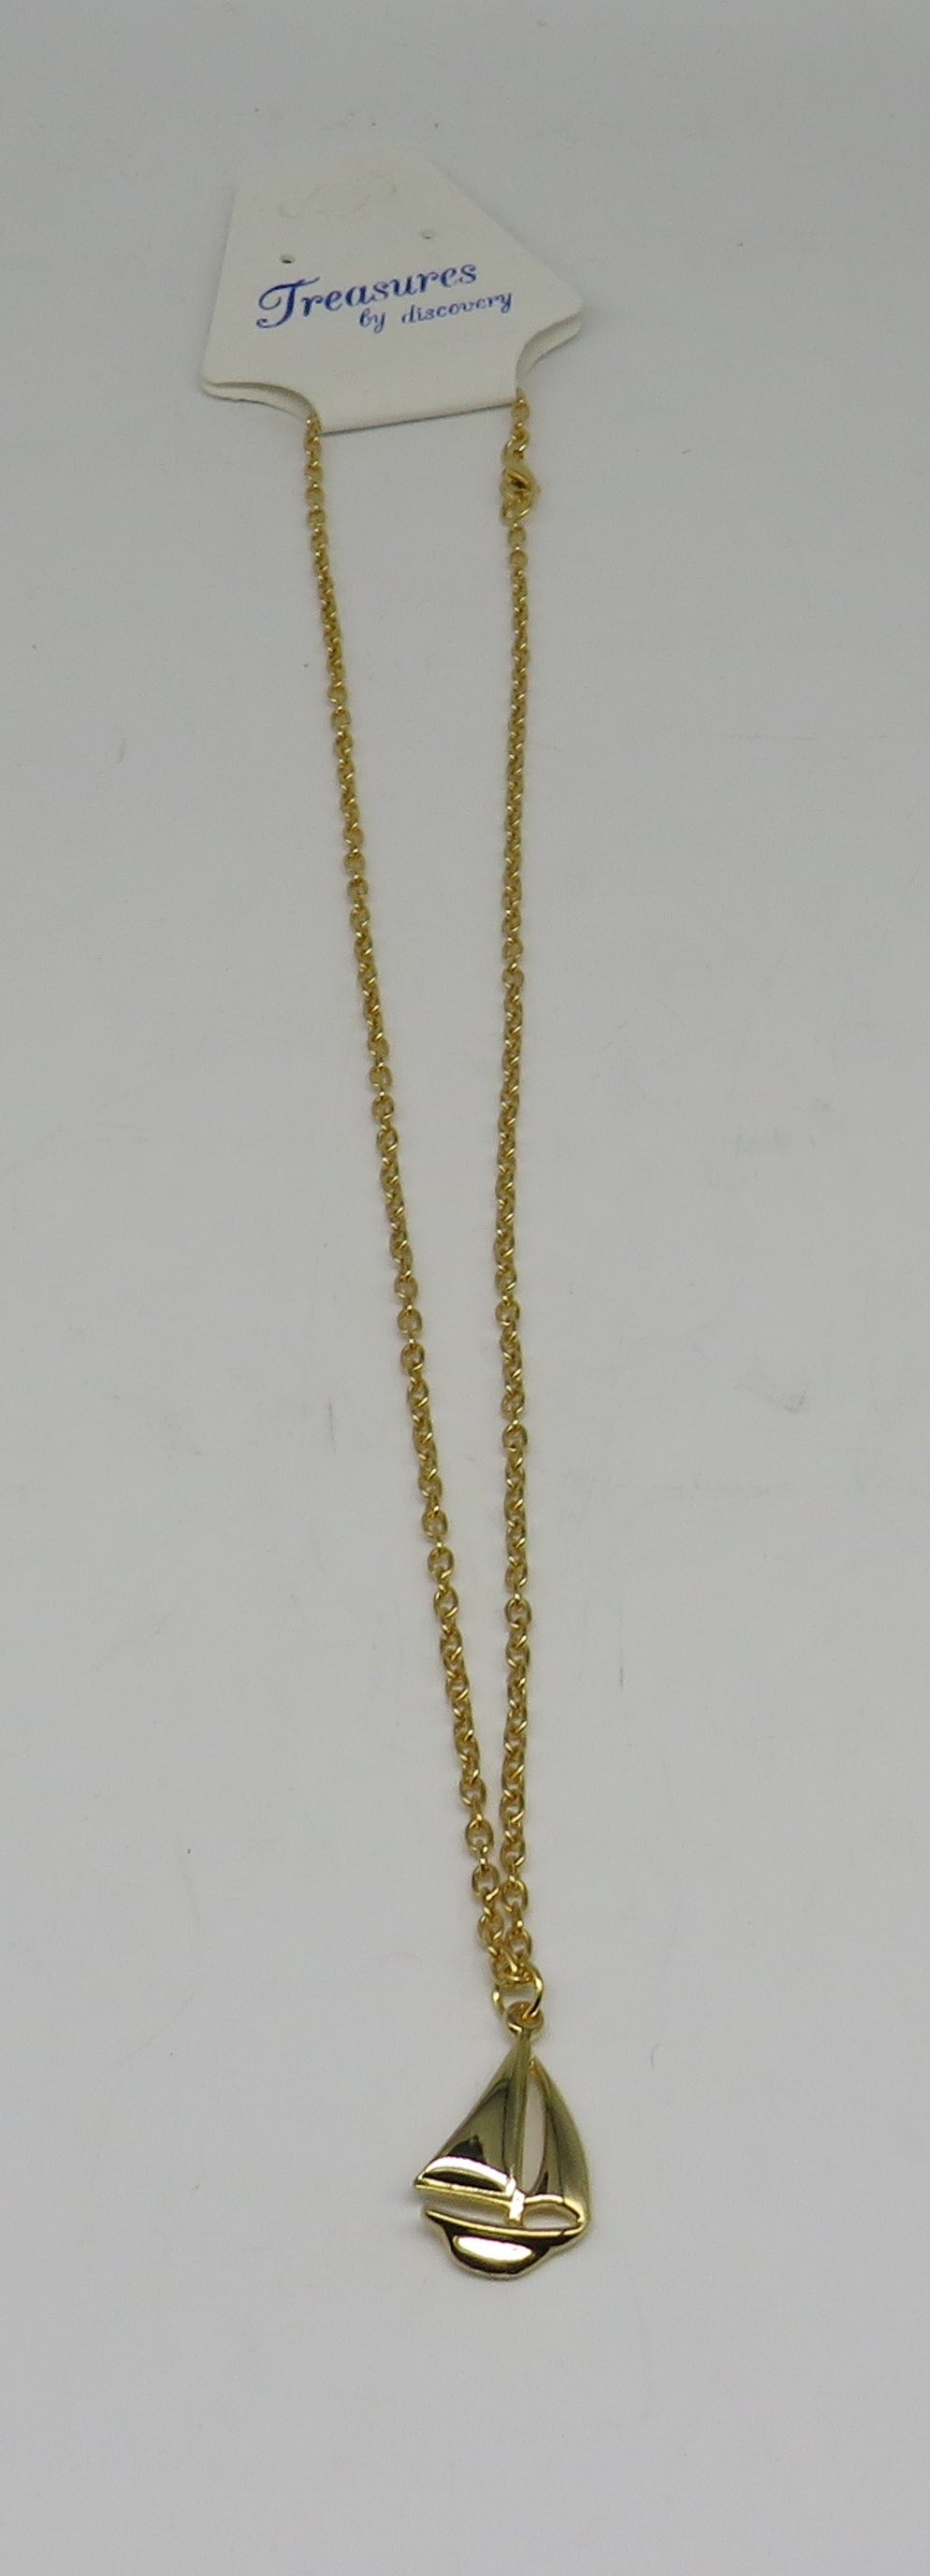 Sailboat Necklace Layered 24 Karat Gold